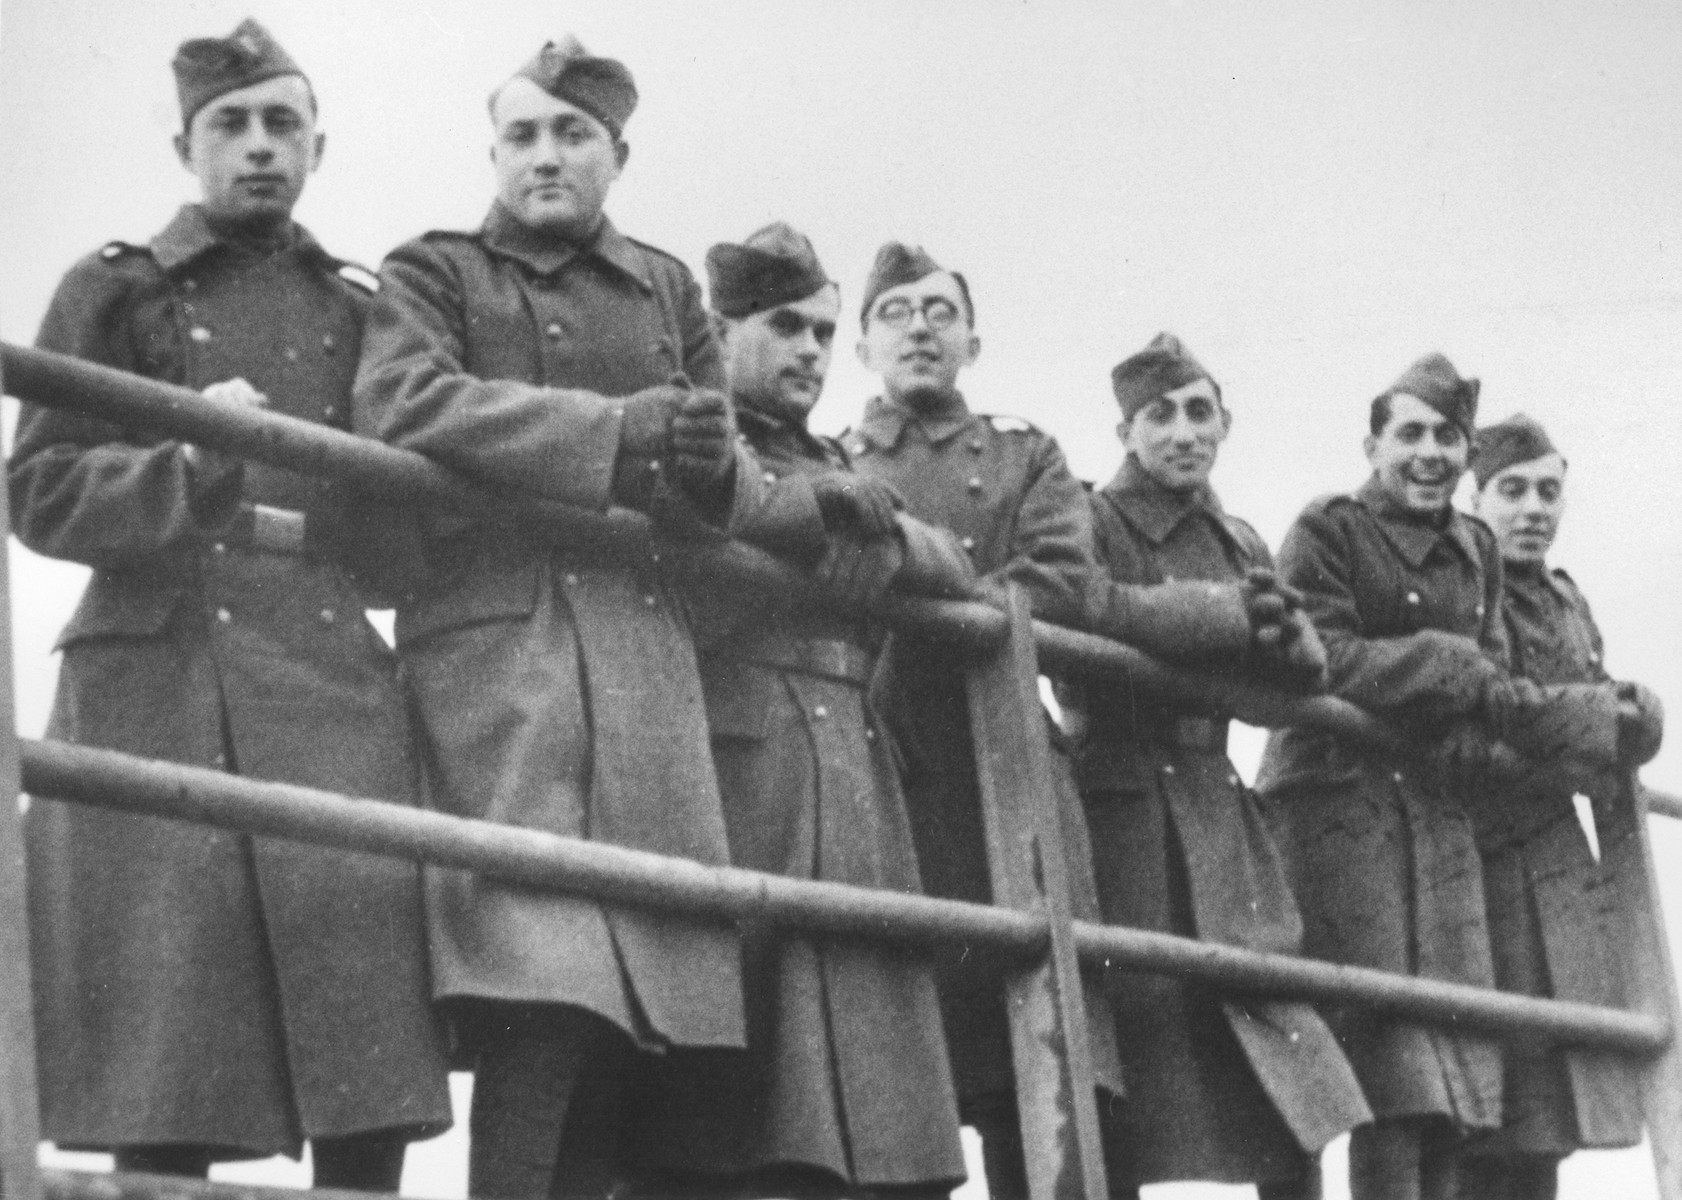 Seven Jewish members of the Sixth Labor Battalion (VI Prapor) pose behind a railing at a Slovak labor camp.   Among those pictured is ? Lower (second from right) from Presov, Slovakia.